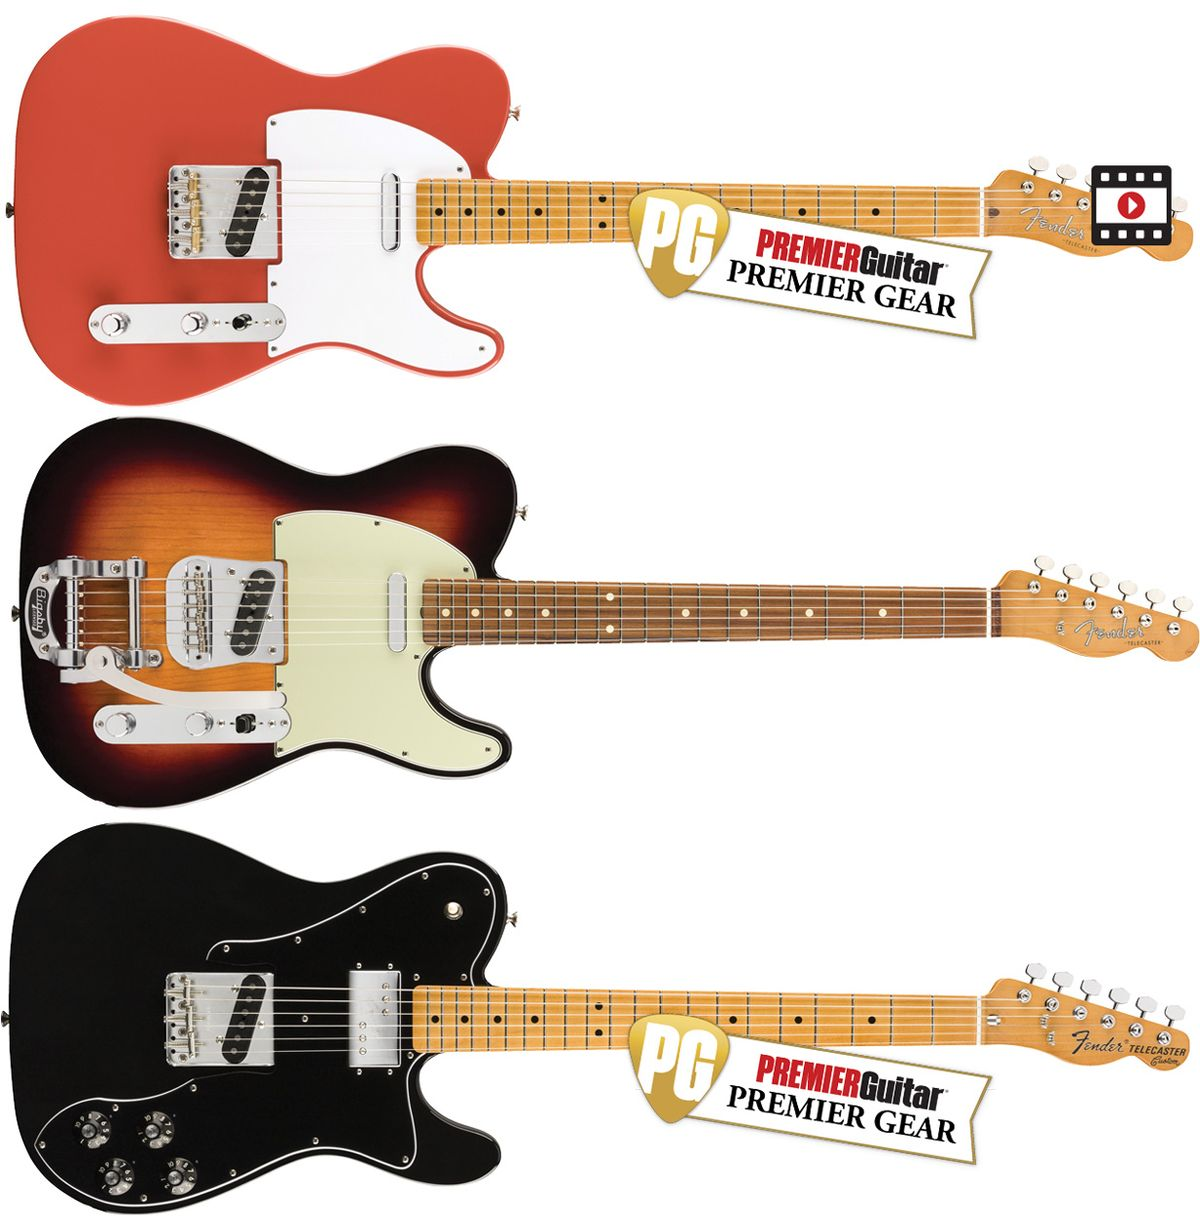 Fender Vintera '50s, '60s, and '70s Custom Telecasters Review